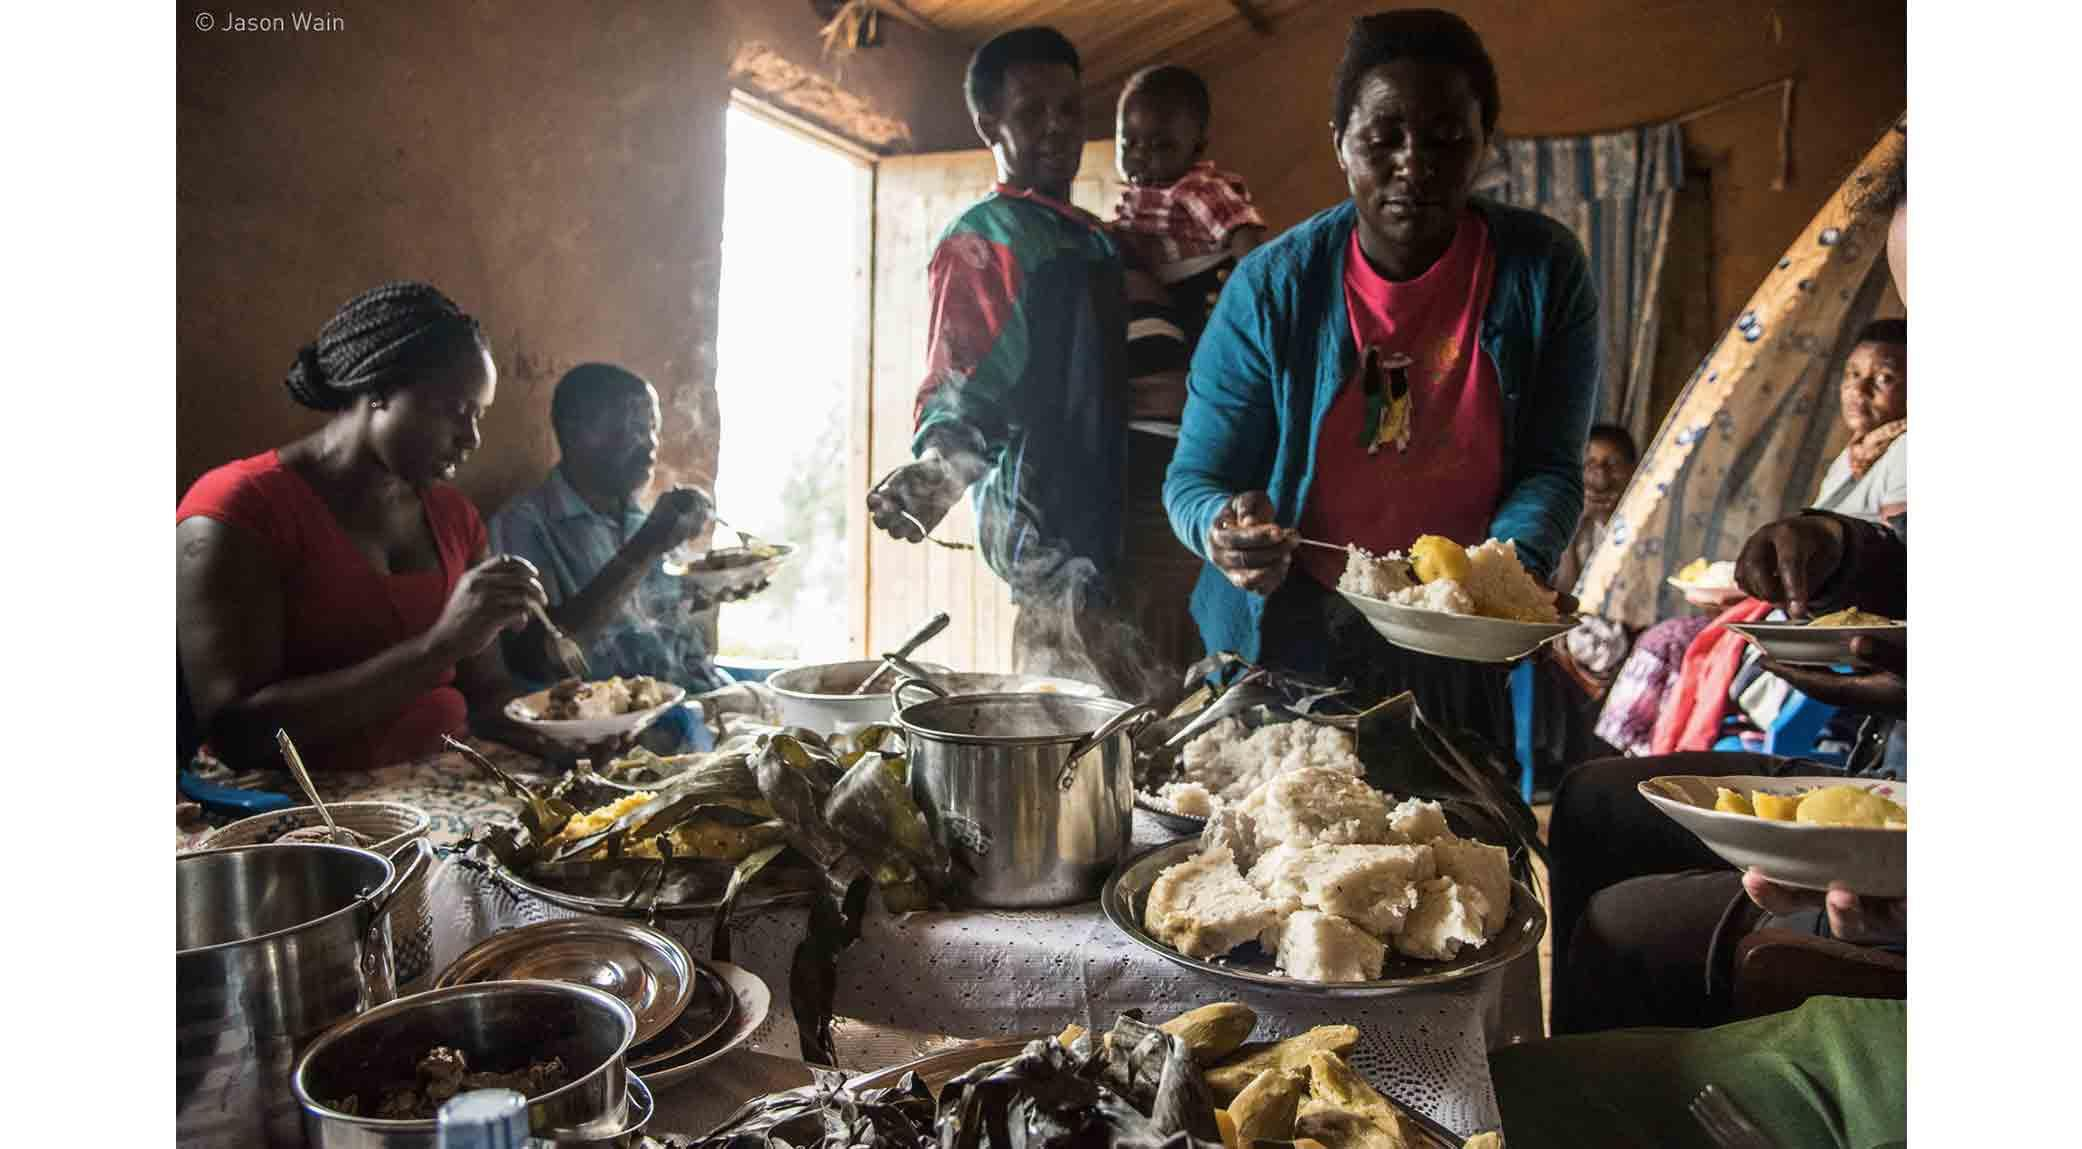 A Ugandan Feast by Jason Wain